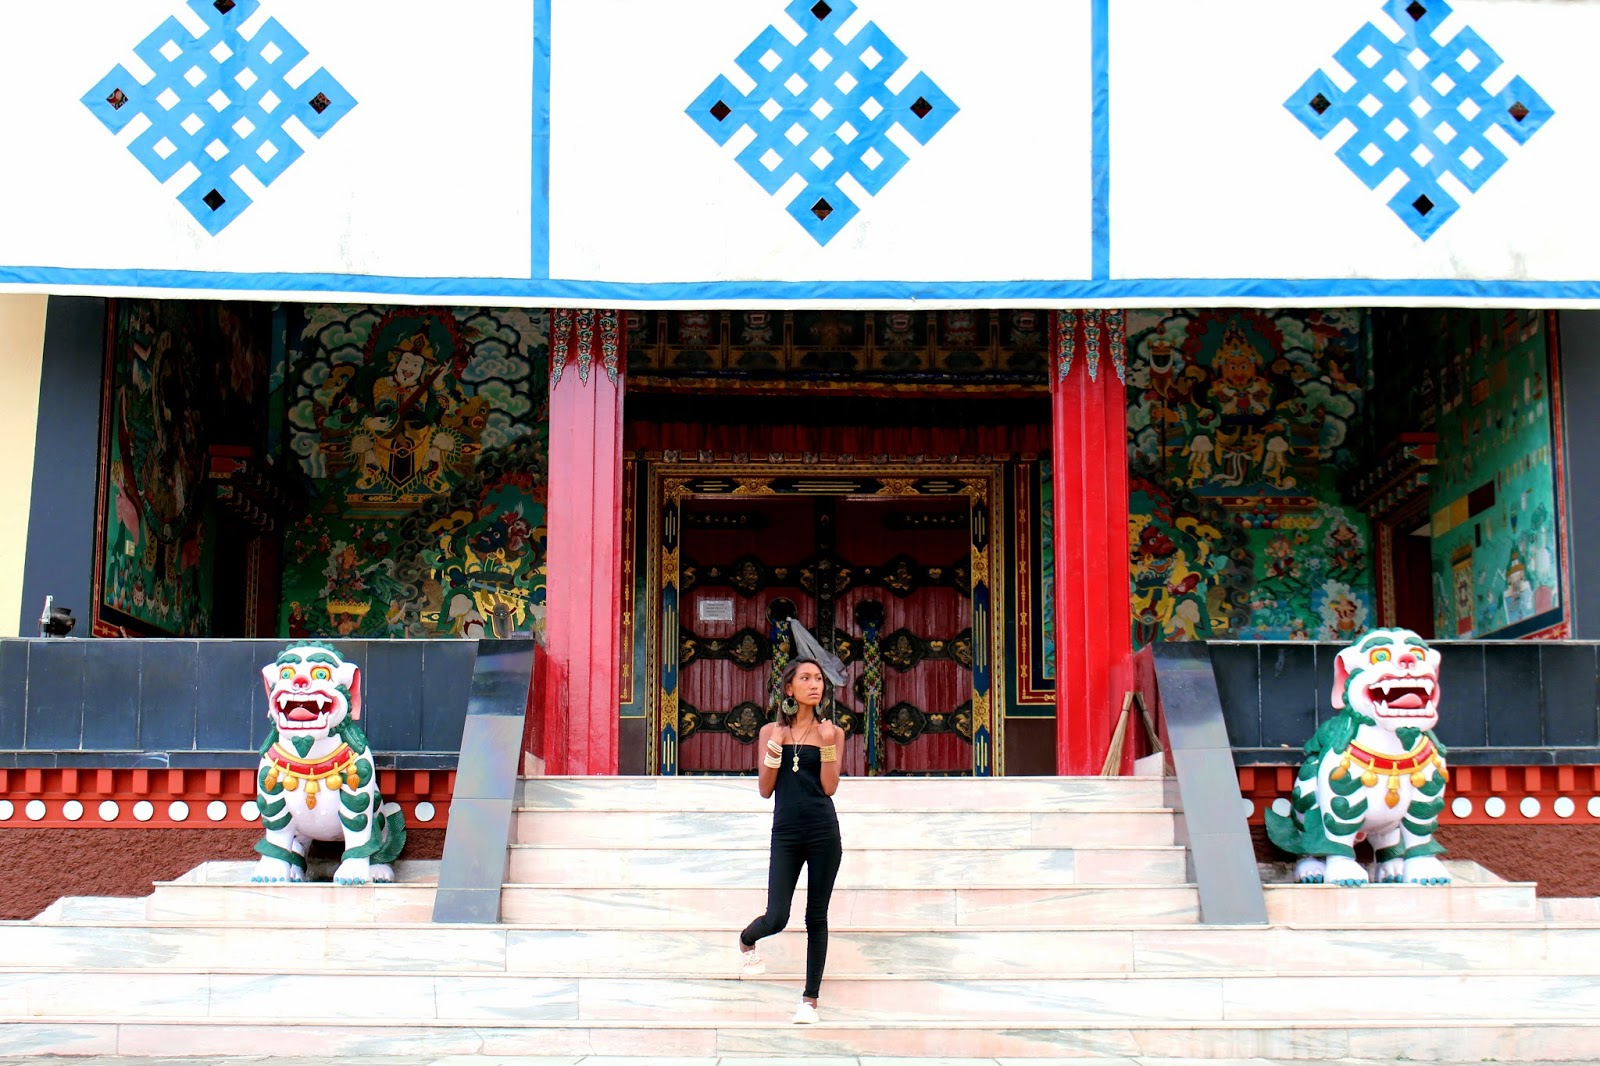 Tibetan monastery, shrine room, model, jewelry, photoshoot